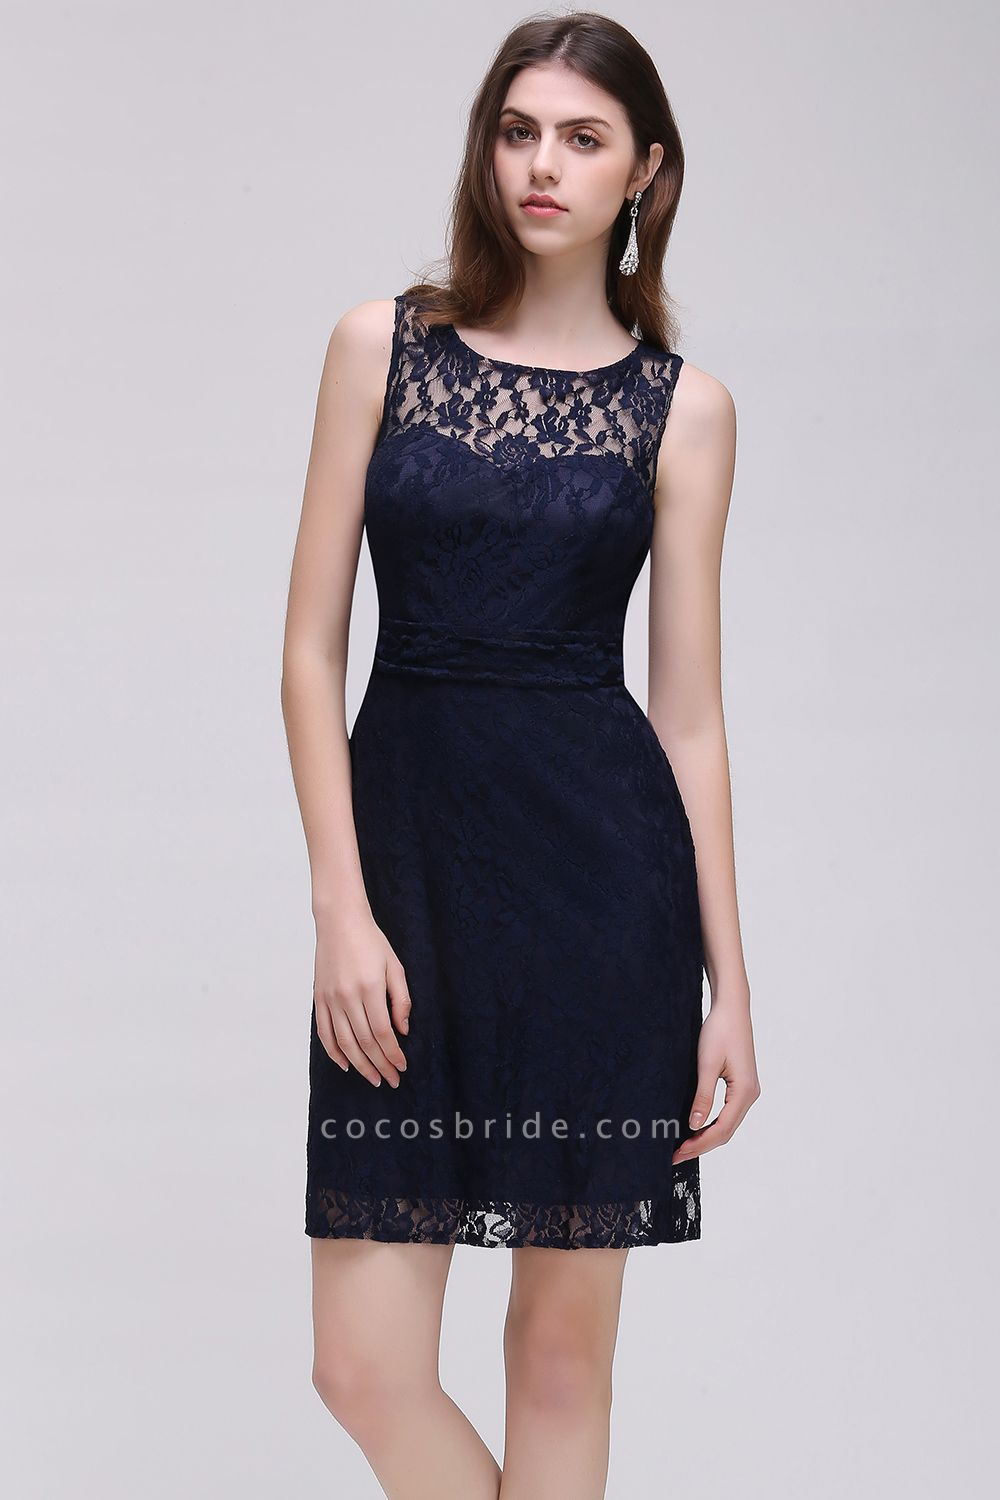 CHARLEIGH |Sheath Scoop neck Short Navy Blue Lace Prom Dresses